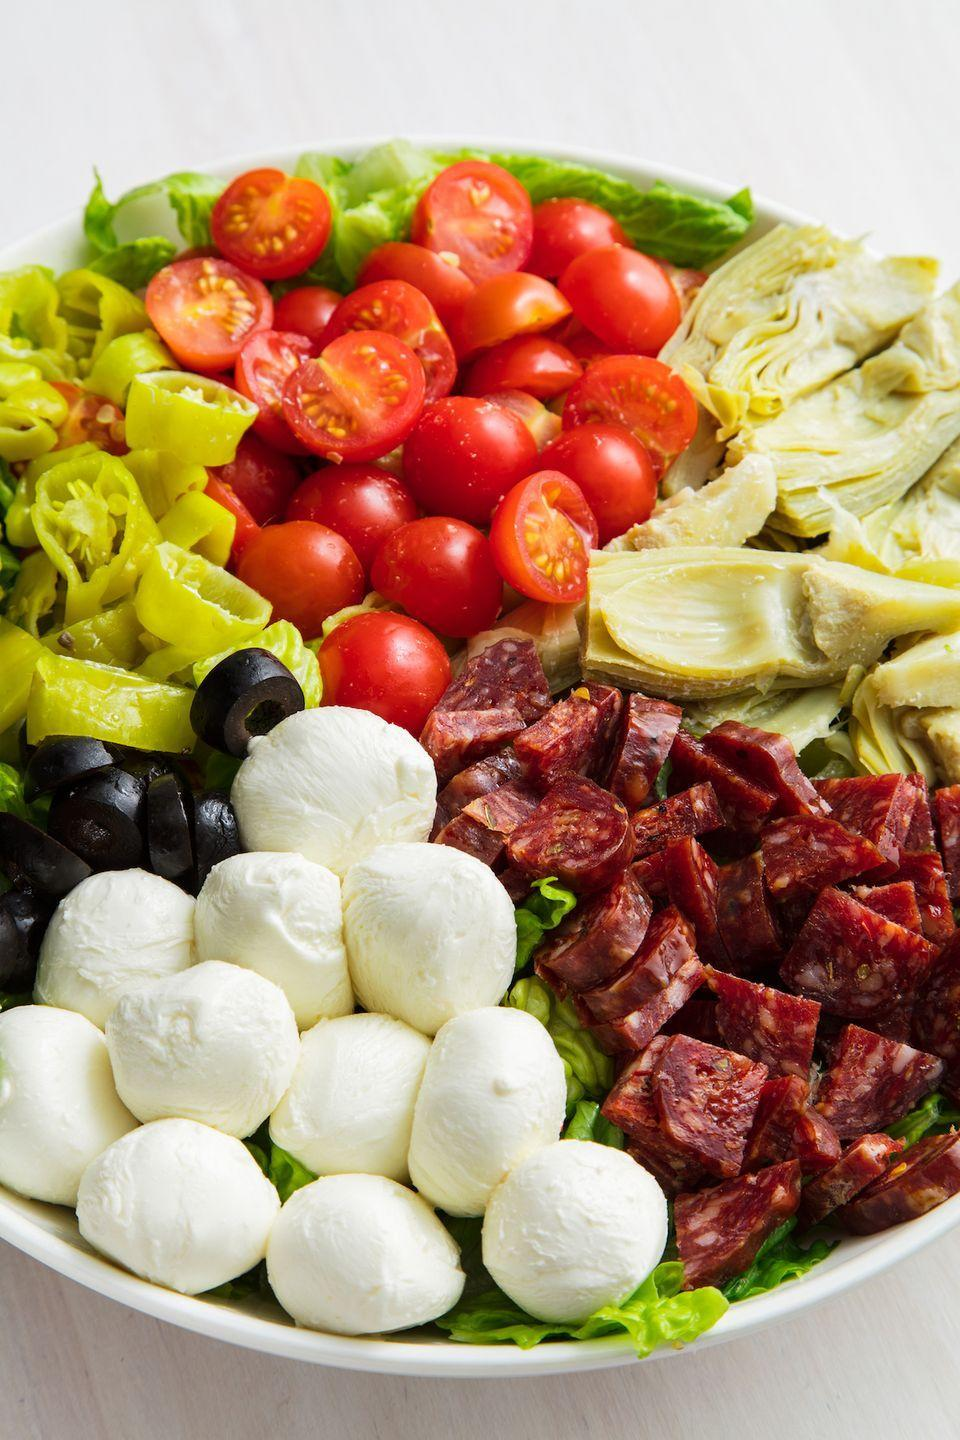 """<p>Give us all the toppings. </p><p>Get the recipe from <a href=""""https://www.delish.com/cooking/recipe-ideas/a19885331/antipasto-salad-recipe/"""" rel=""""nofollow noopener"""" target=""""_blank"""" data-ylk=""""slk:Delish"""" class=""""link rapid-noclick-resp"""">Delish</a>.</p>"""